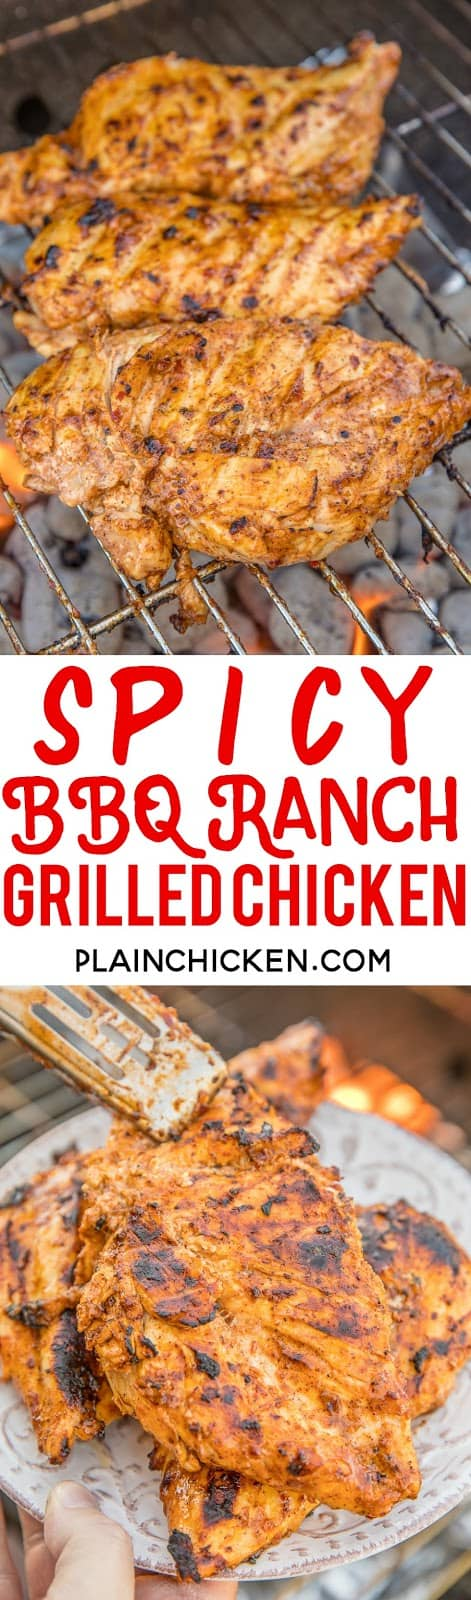 Spicy BBQ Ranch Grilled Chicken - seriously delicious chicken!! Only 4 ingredients - BBQ sauce, Ranch dressing, chili powder and red pepper flakes. Let the chicken marinate overnight for maximum flavor!! This is a favorite in our house!! We always grill extra chicken for leftovers - SO good! #grilling #chicken #grilledchicken #bbq